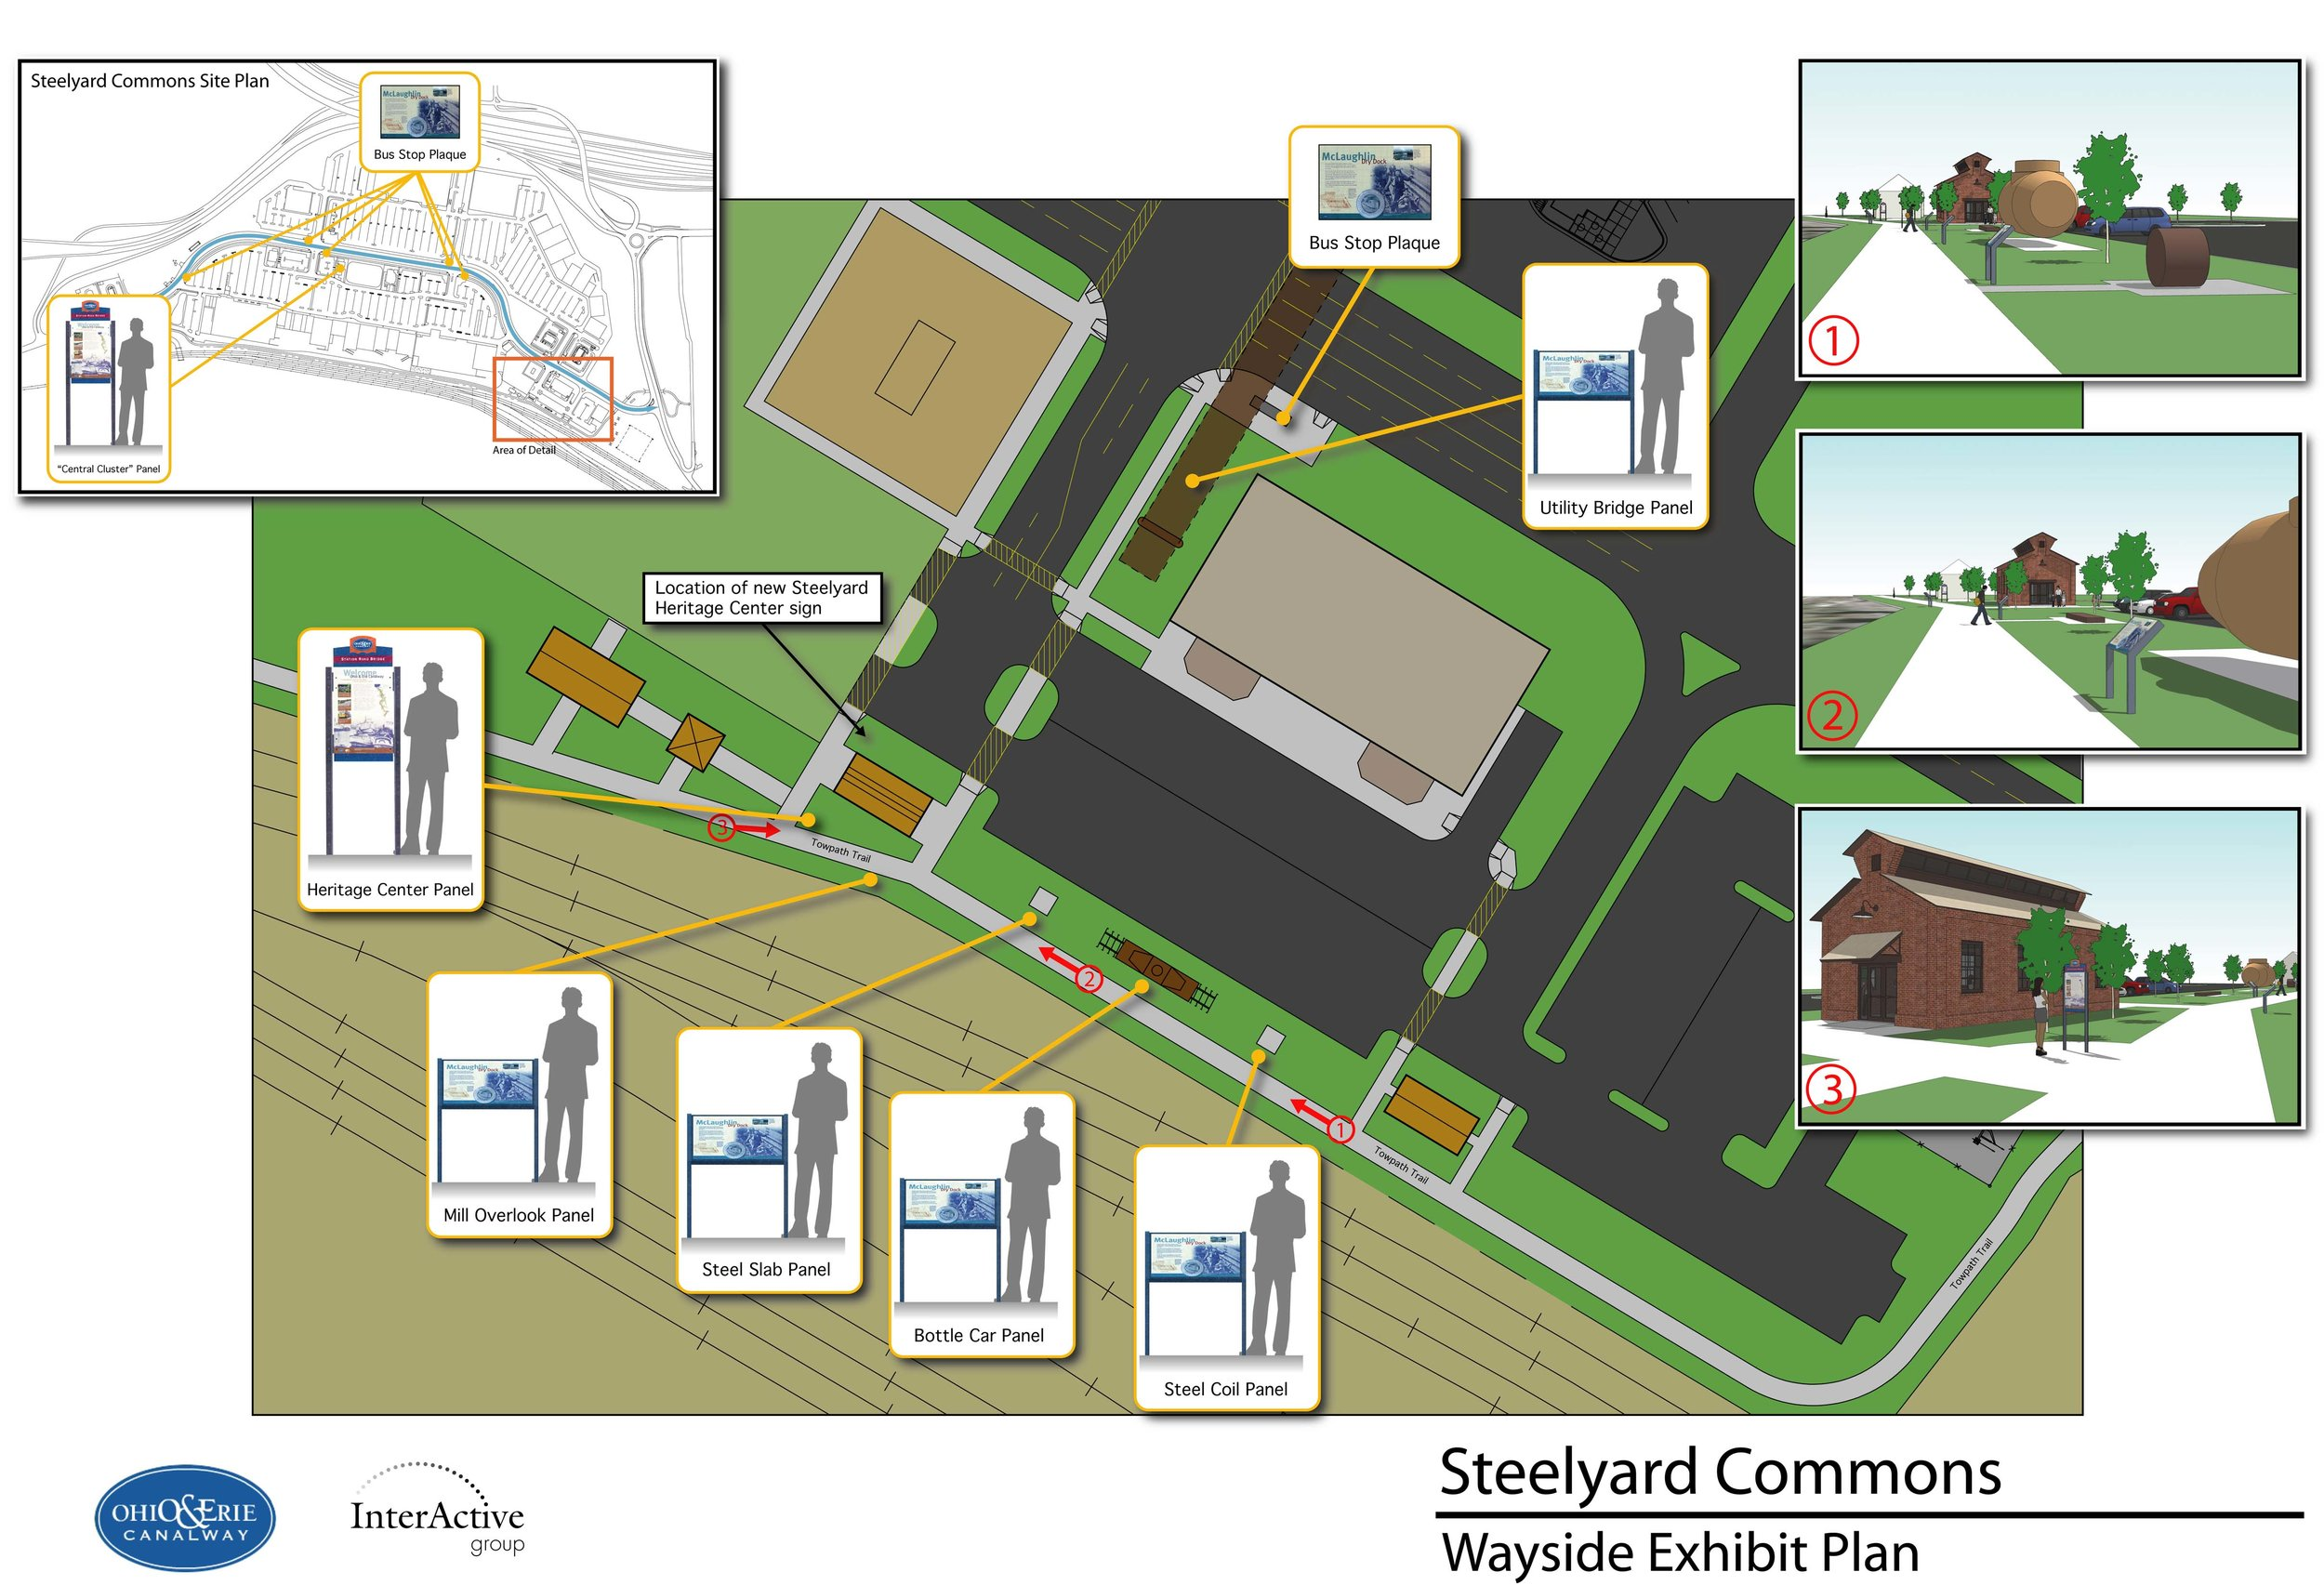 Steelyard Wayside Exhibit Plan.jpg